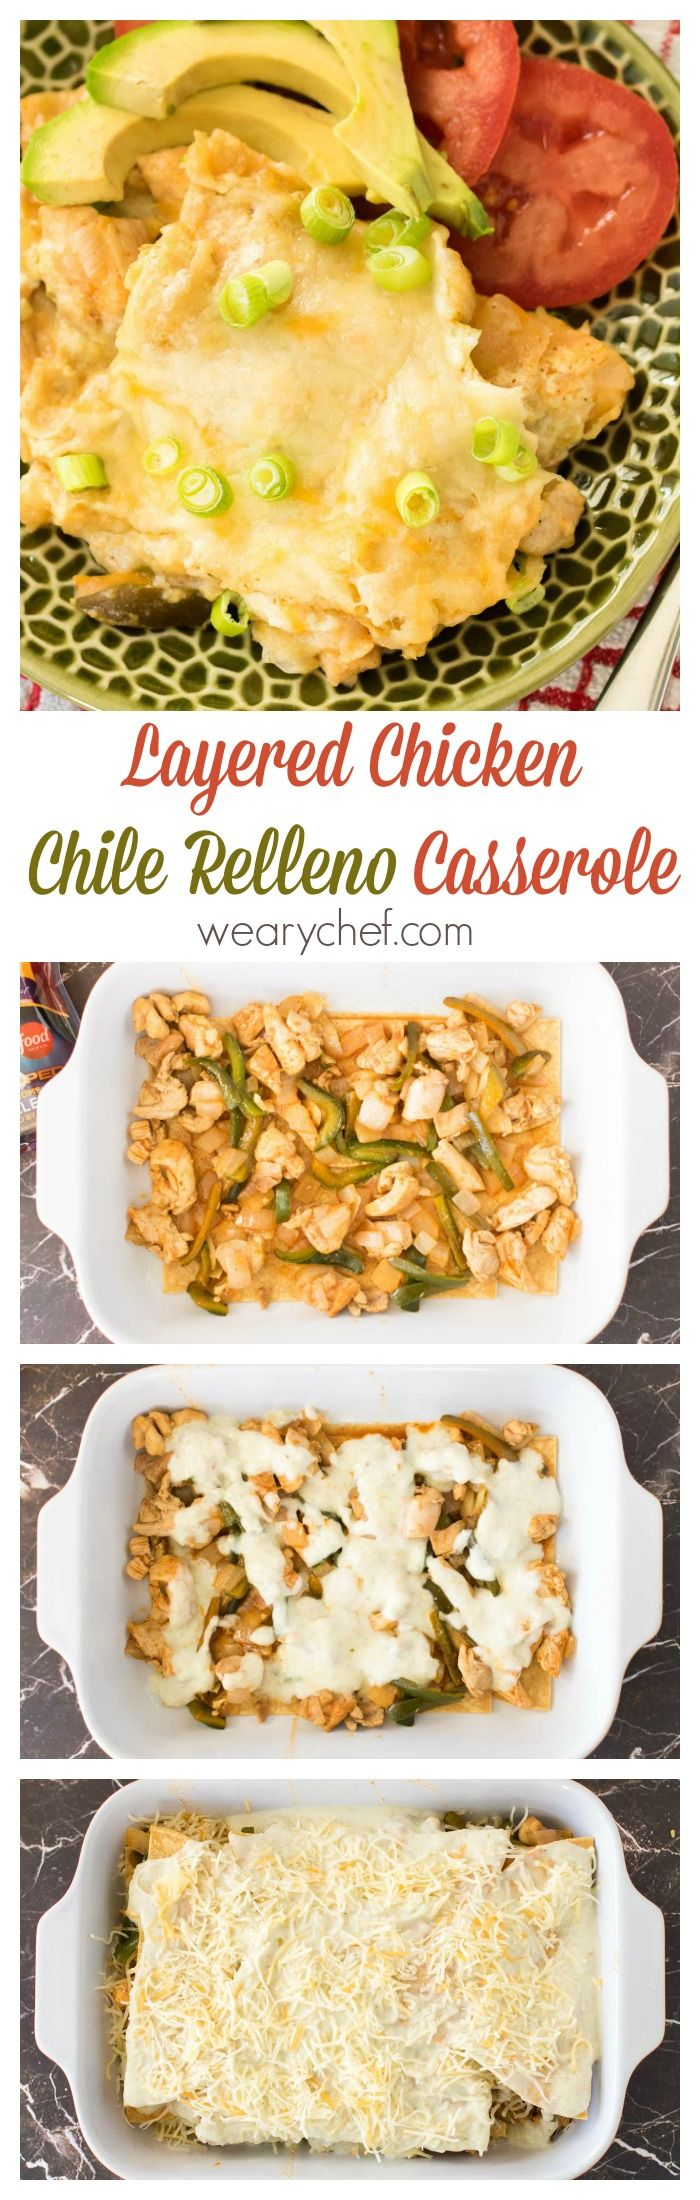 This layered chile relleno casserole is the definition of comfort food. Plus, it's gluten free! (Chicken Chili Relleno)